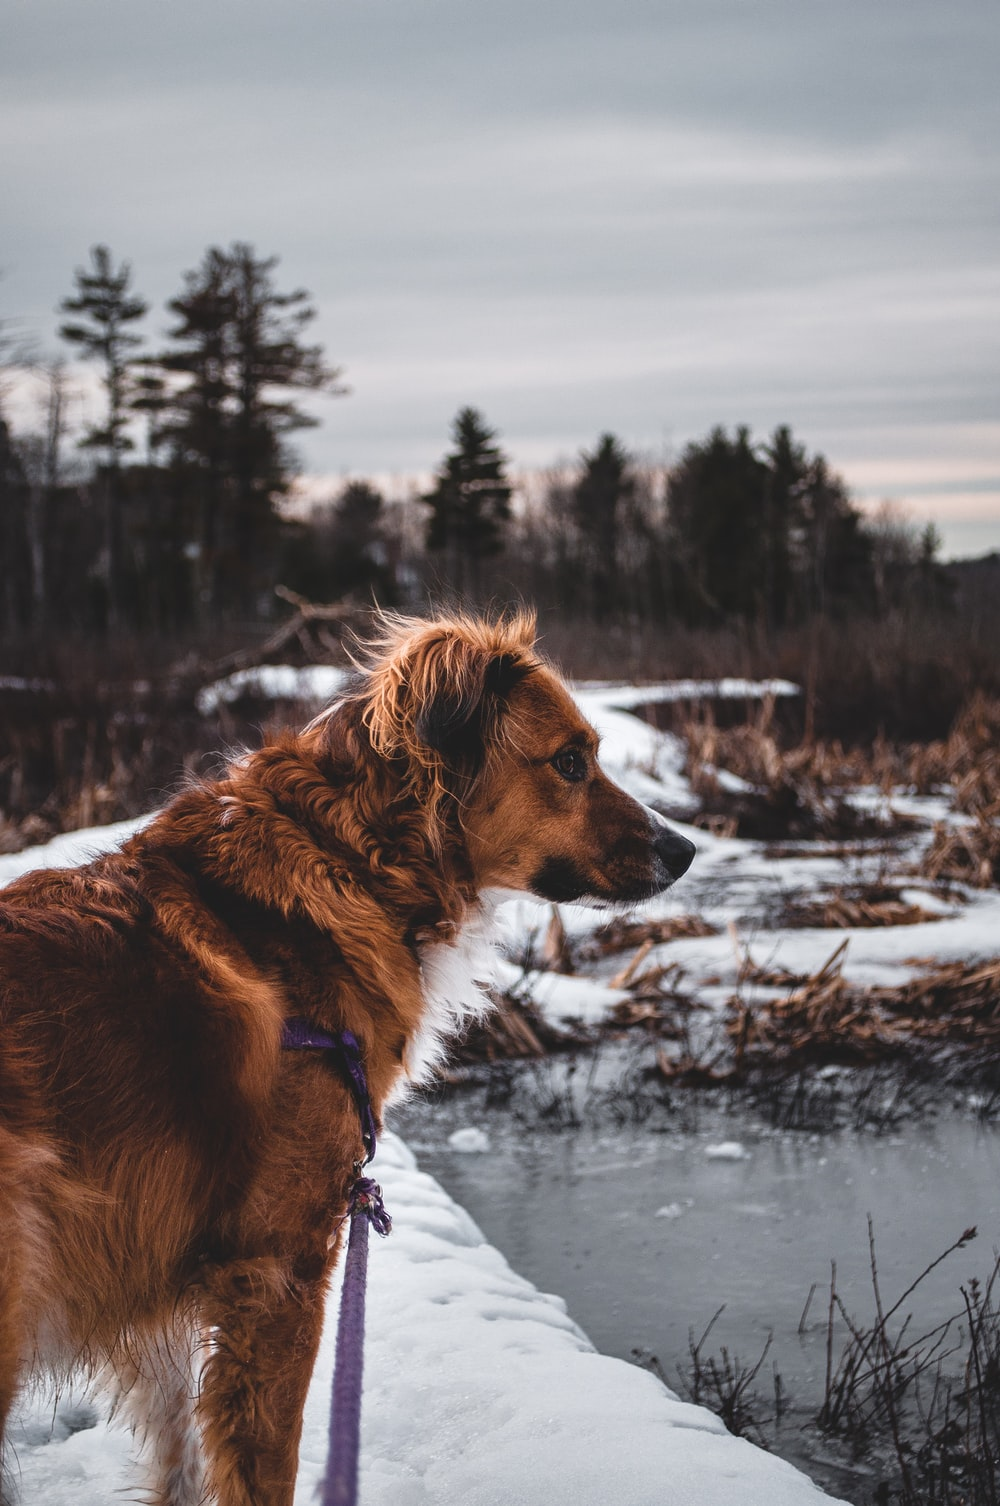 long-coated brown dog standing near body of water during winter season